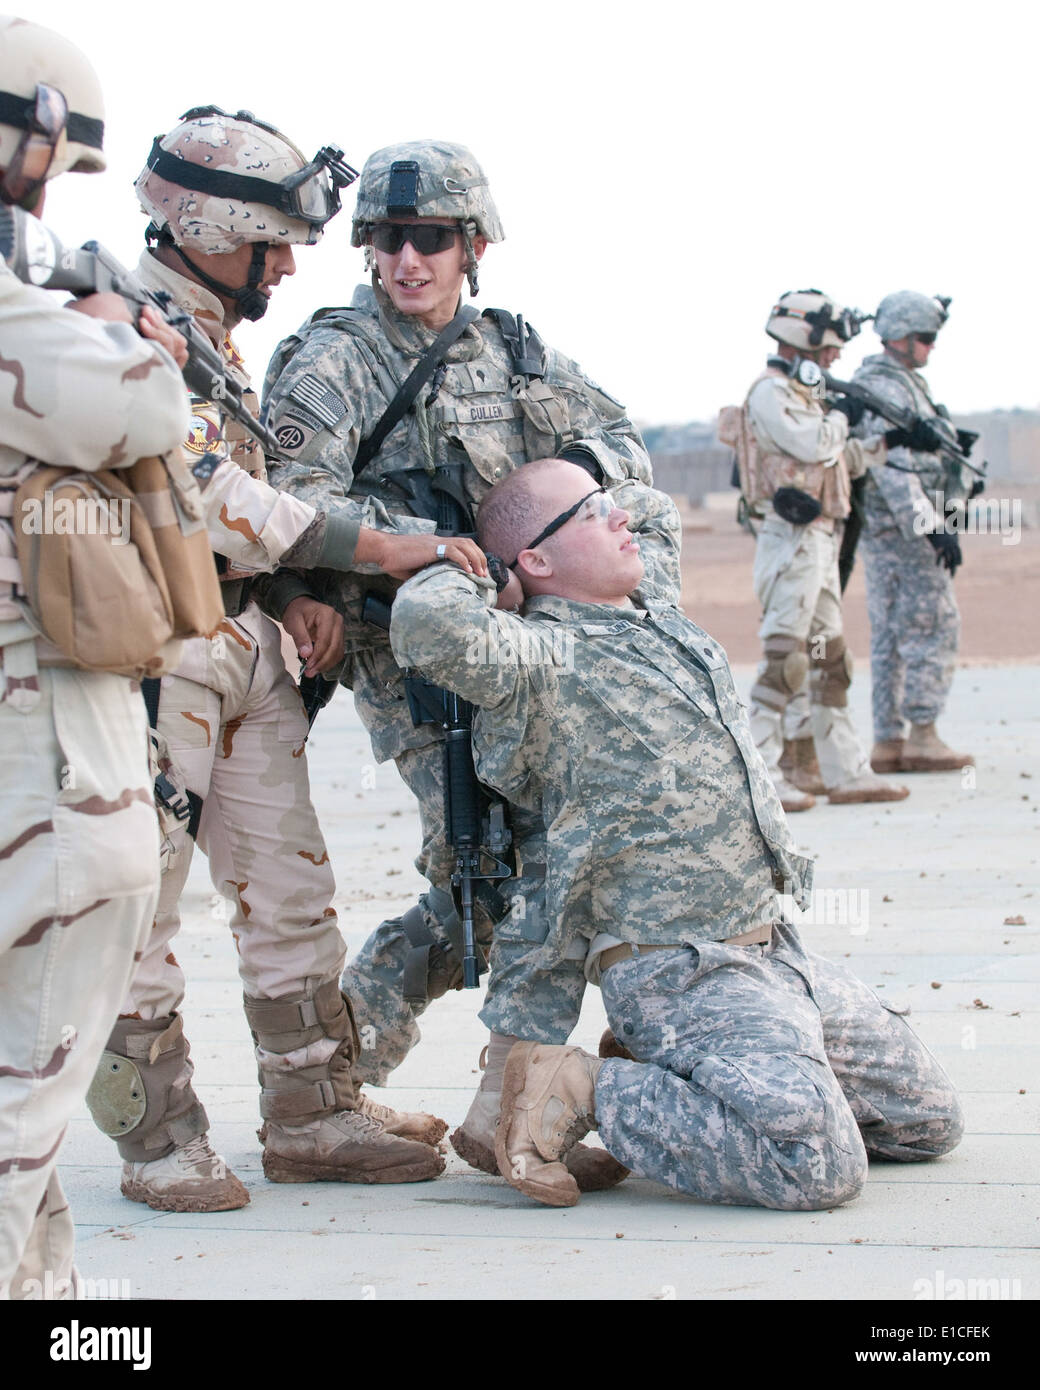 U.S. Army Spc. Patrick Cullen demonstrates to Iraqi scouts from 1st Iraqi Army Division how to secure detainees during partnere - Stock Image